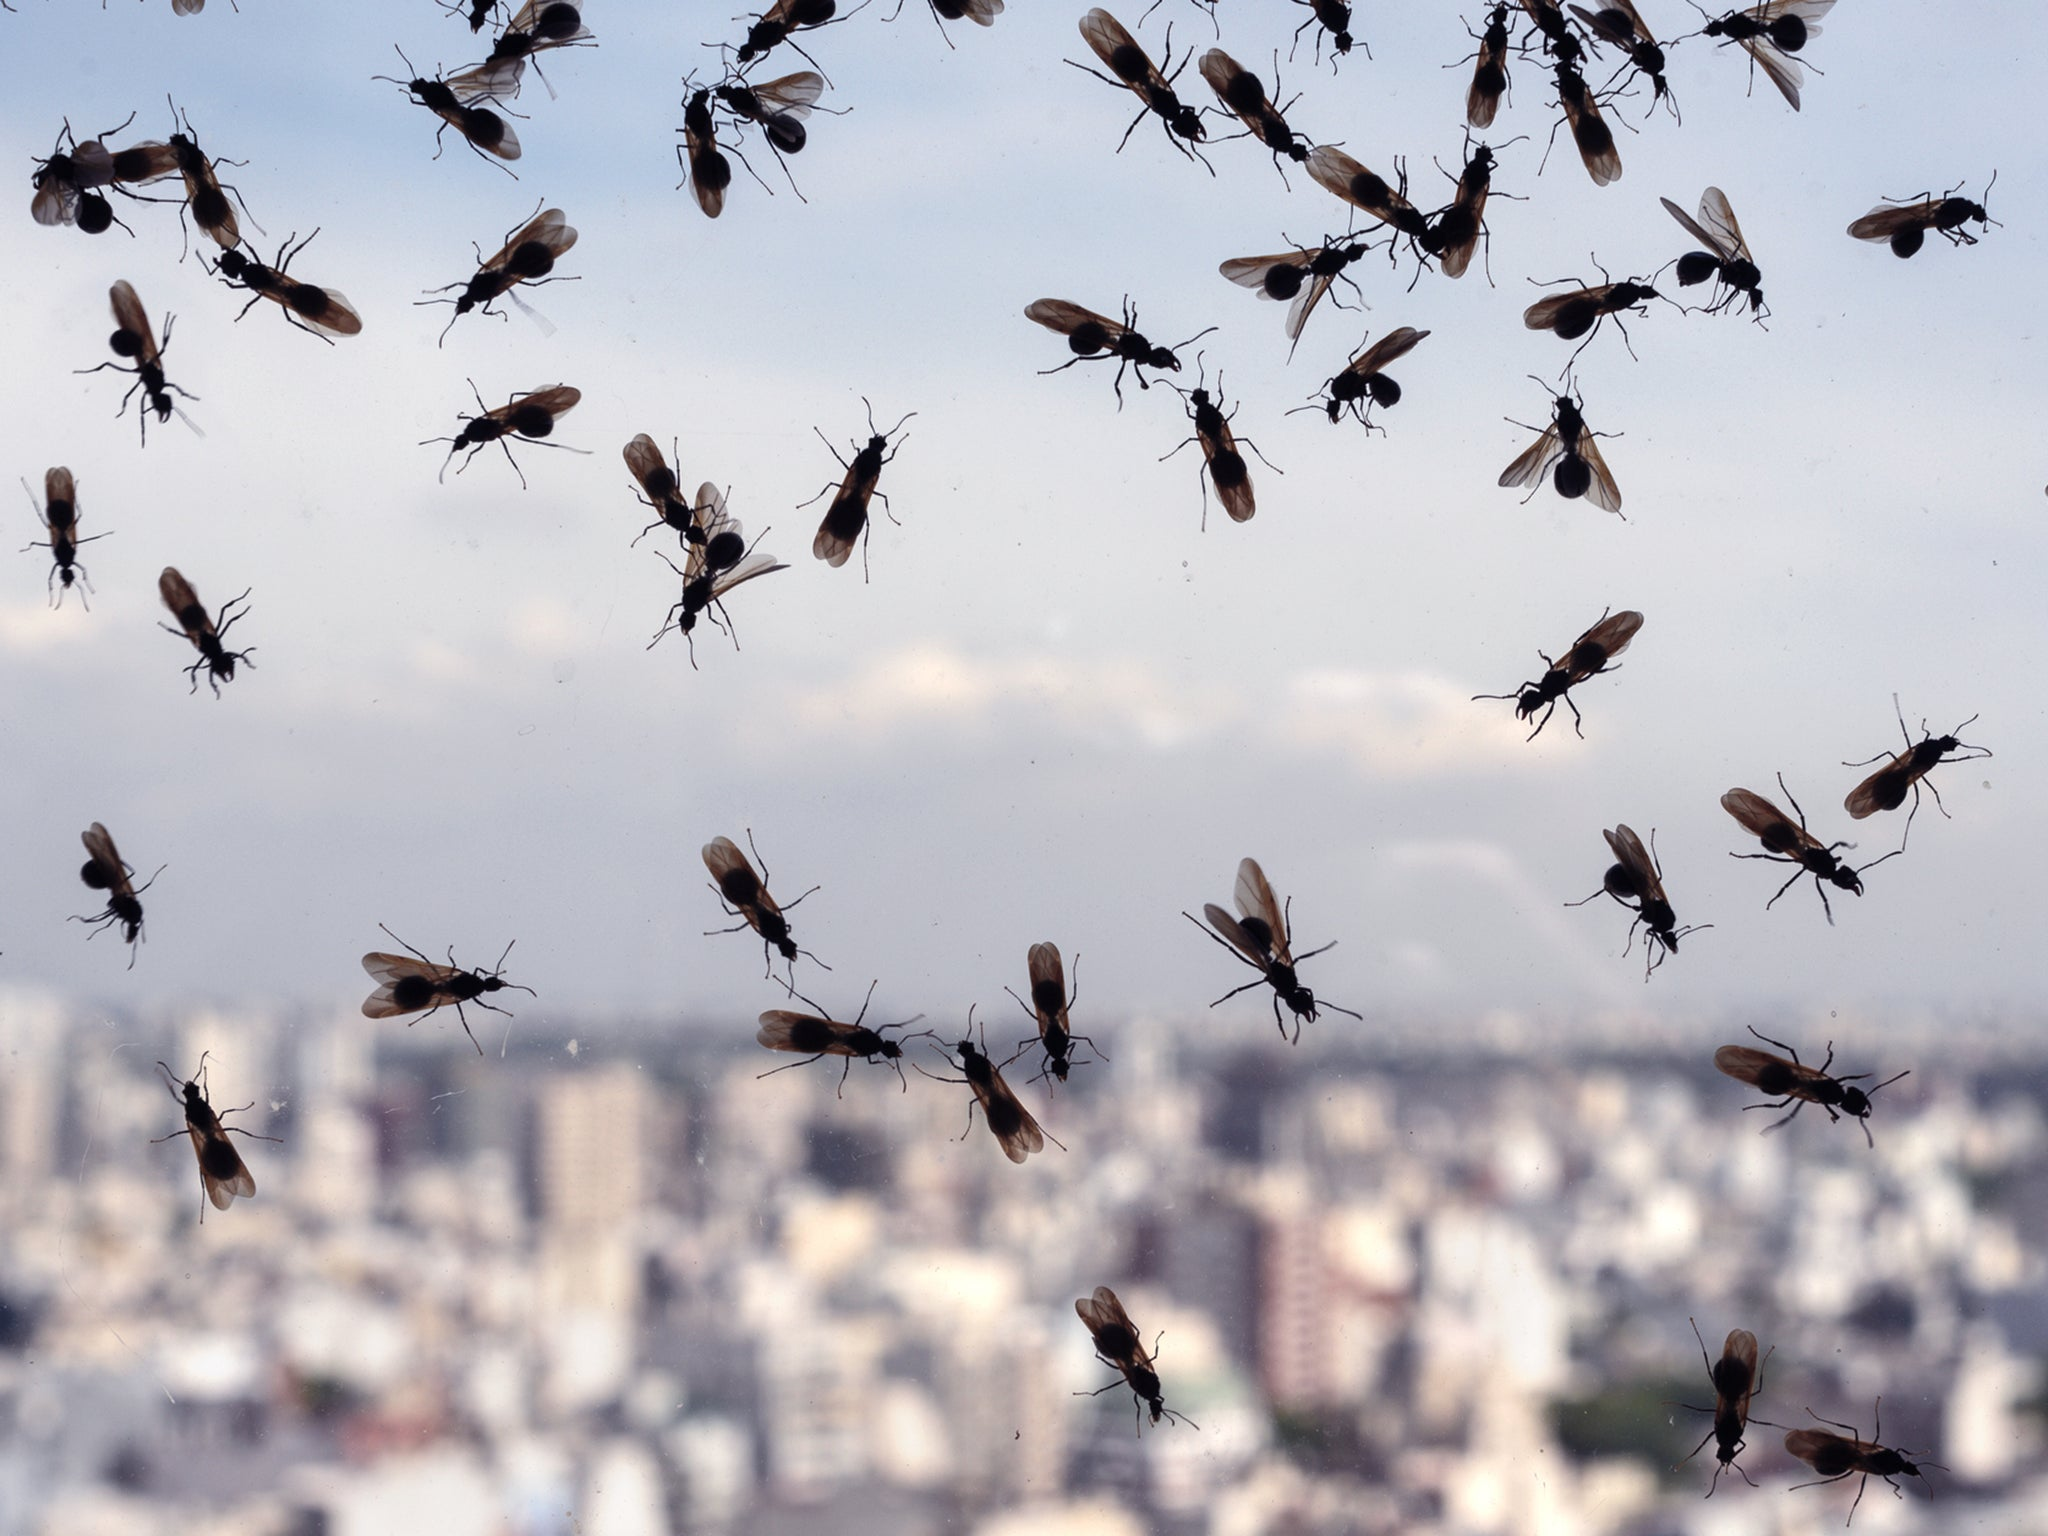 Flying ants could swarm to Wembley for Euro 2020 final